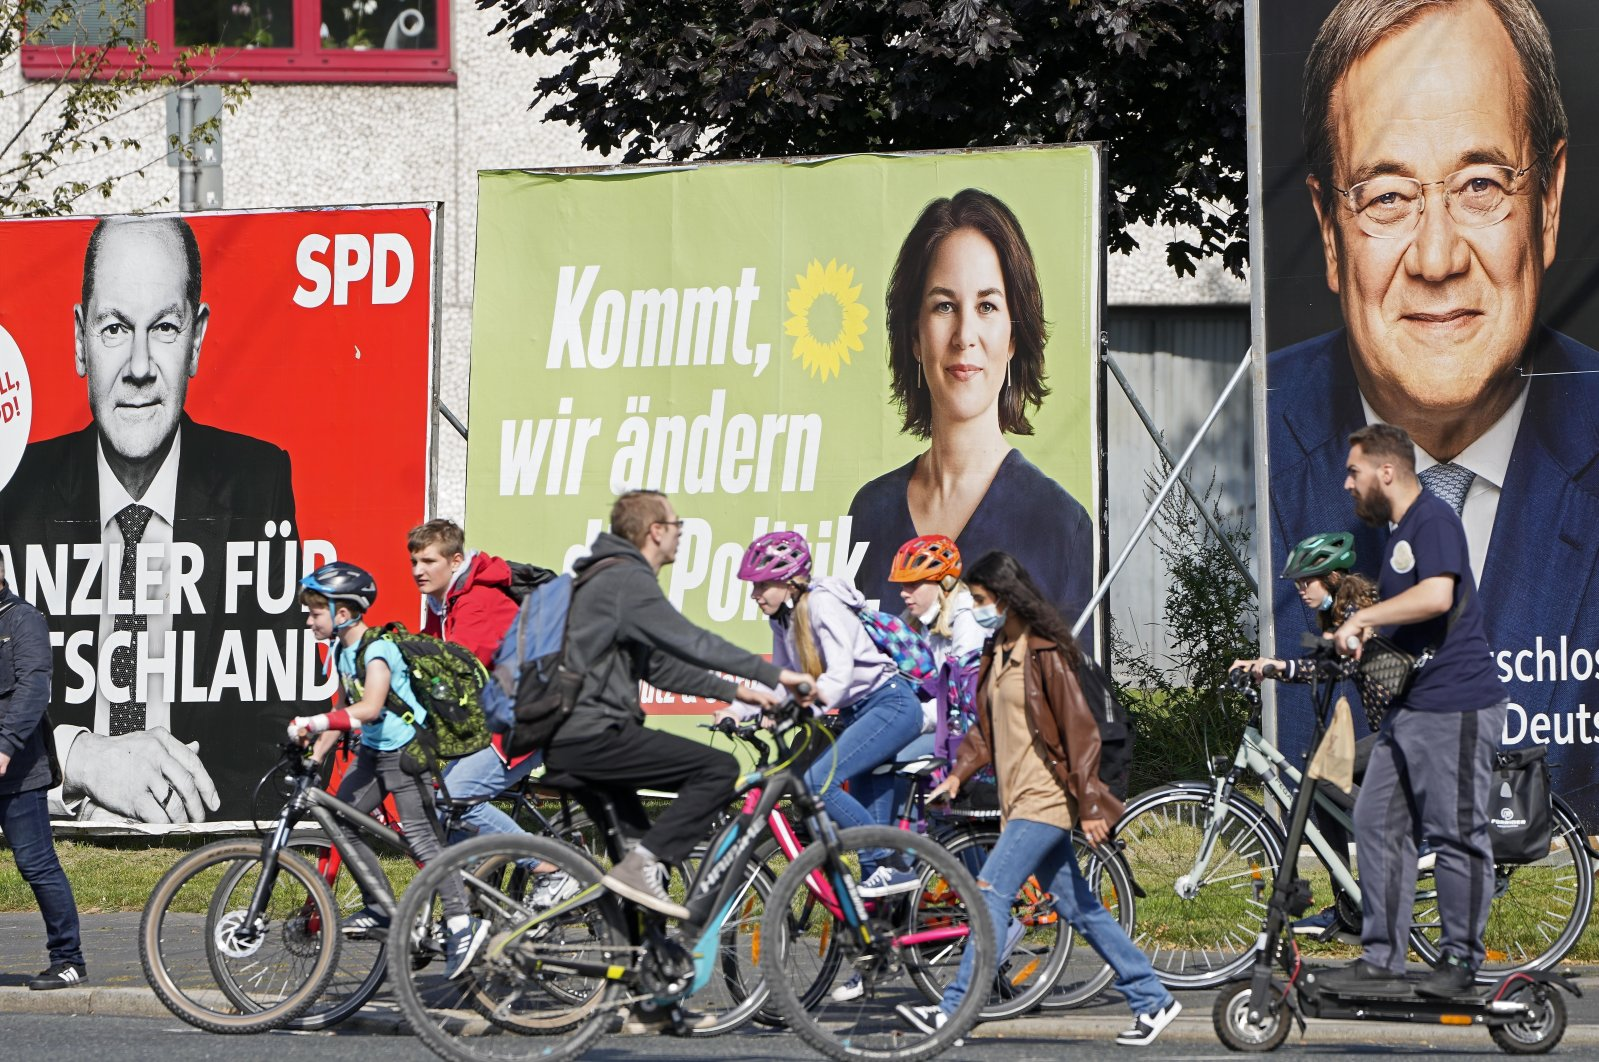 People walk and drive past election posters of the three candidates for German chancellor, Armin Laschet (R), Annalena Baerbock (C) and Olaf Scholz, on a street in Gelsenkirchen, Germany, Sept. 23, 2021. (AP Photo)